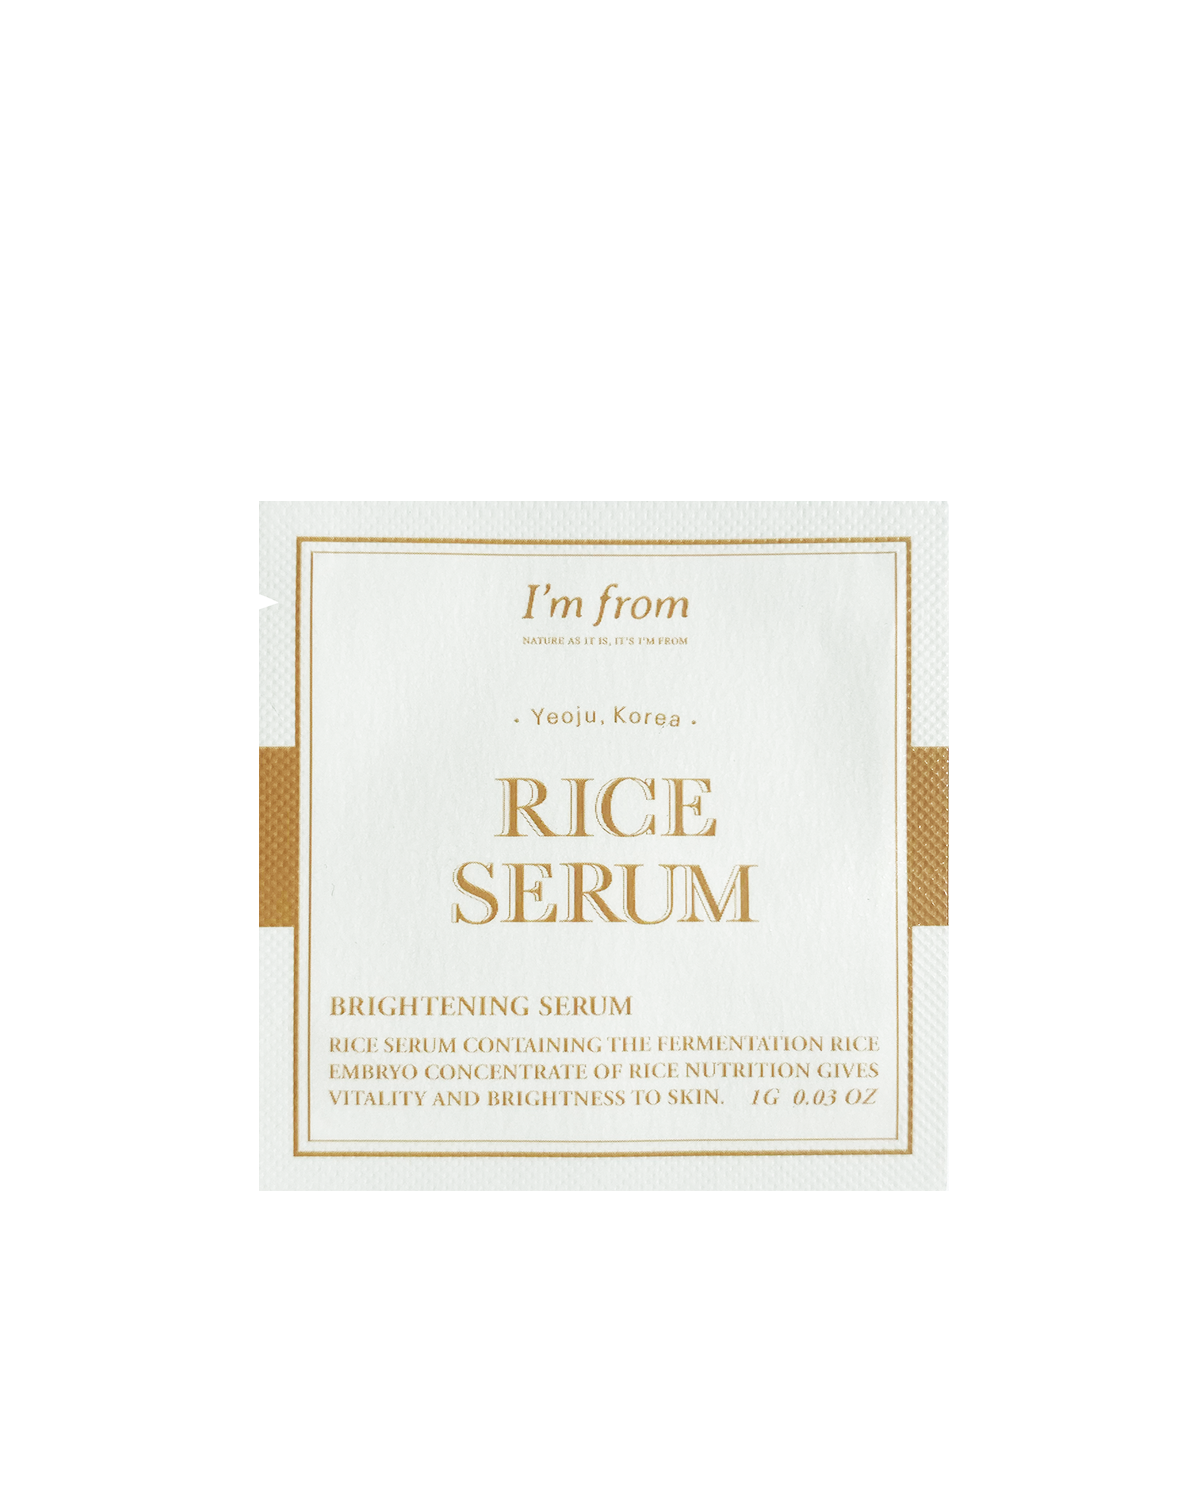 I'M FROM Rice Serum Sample 1g